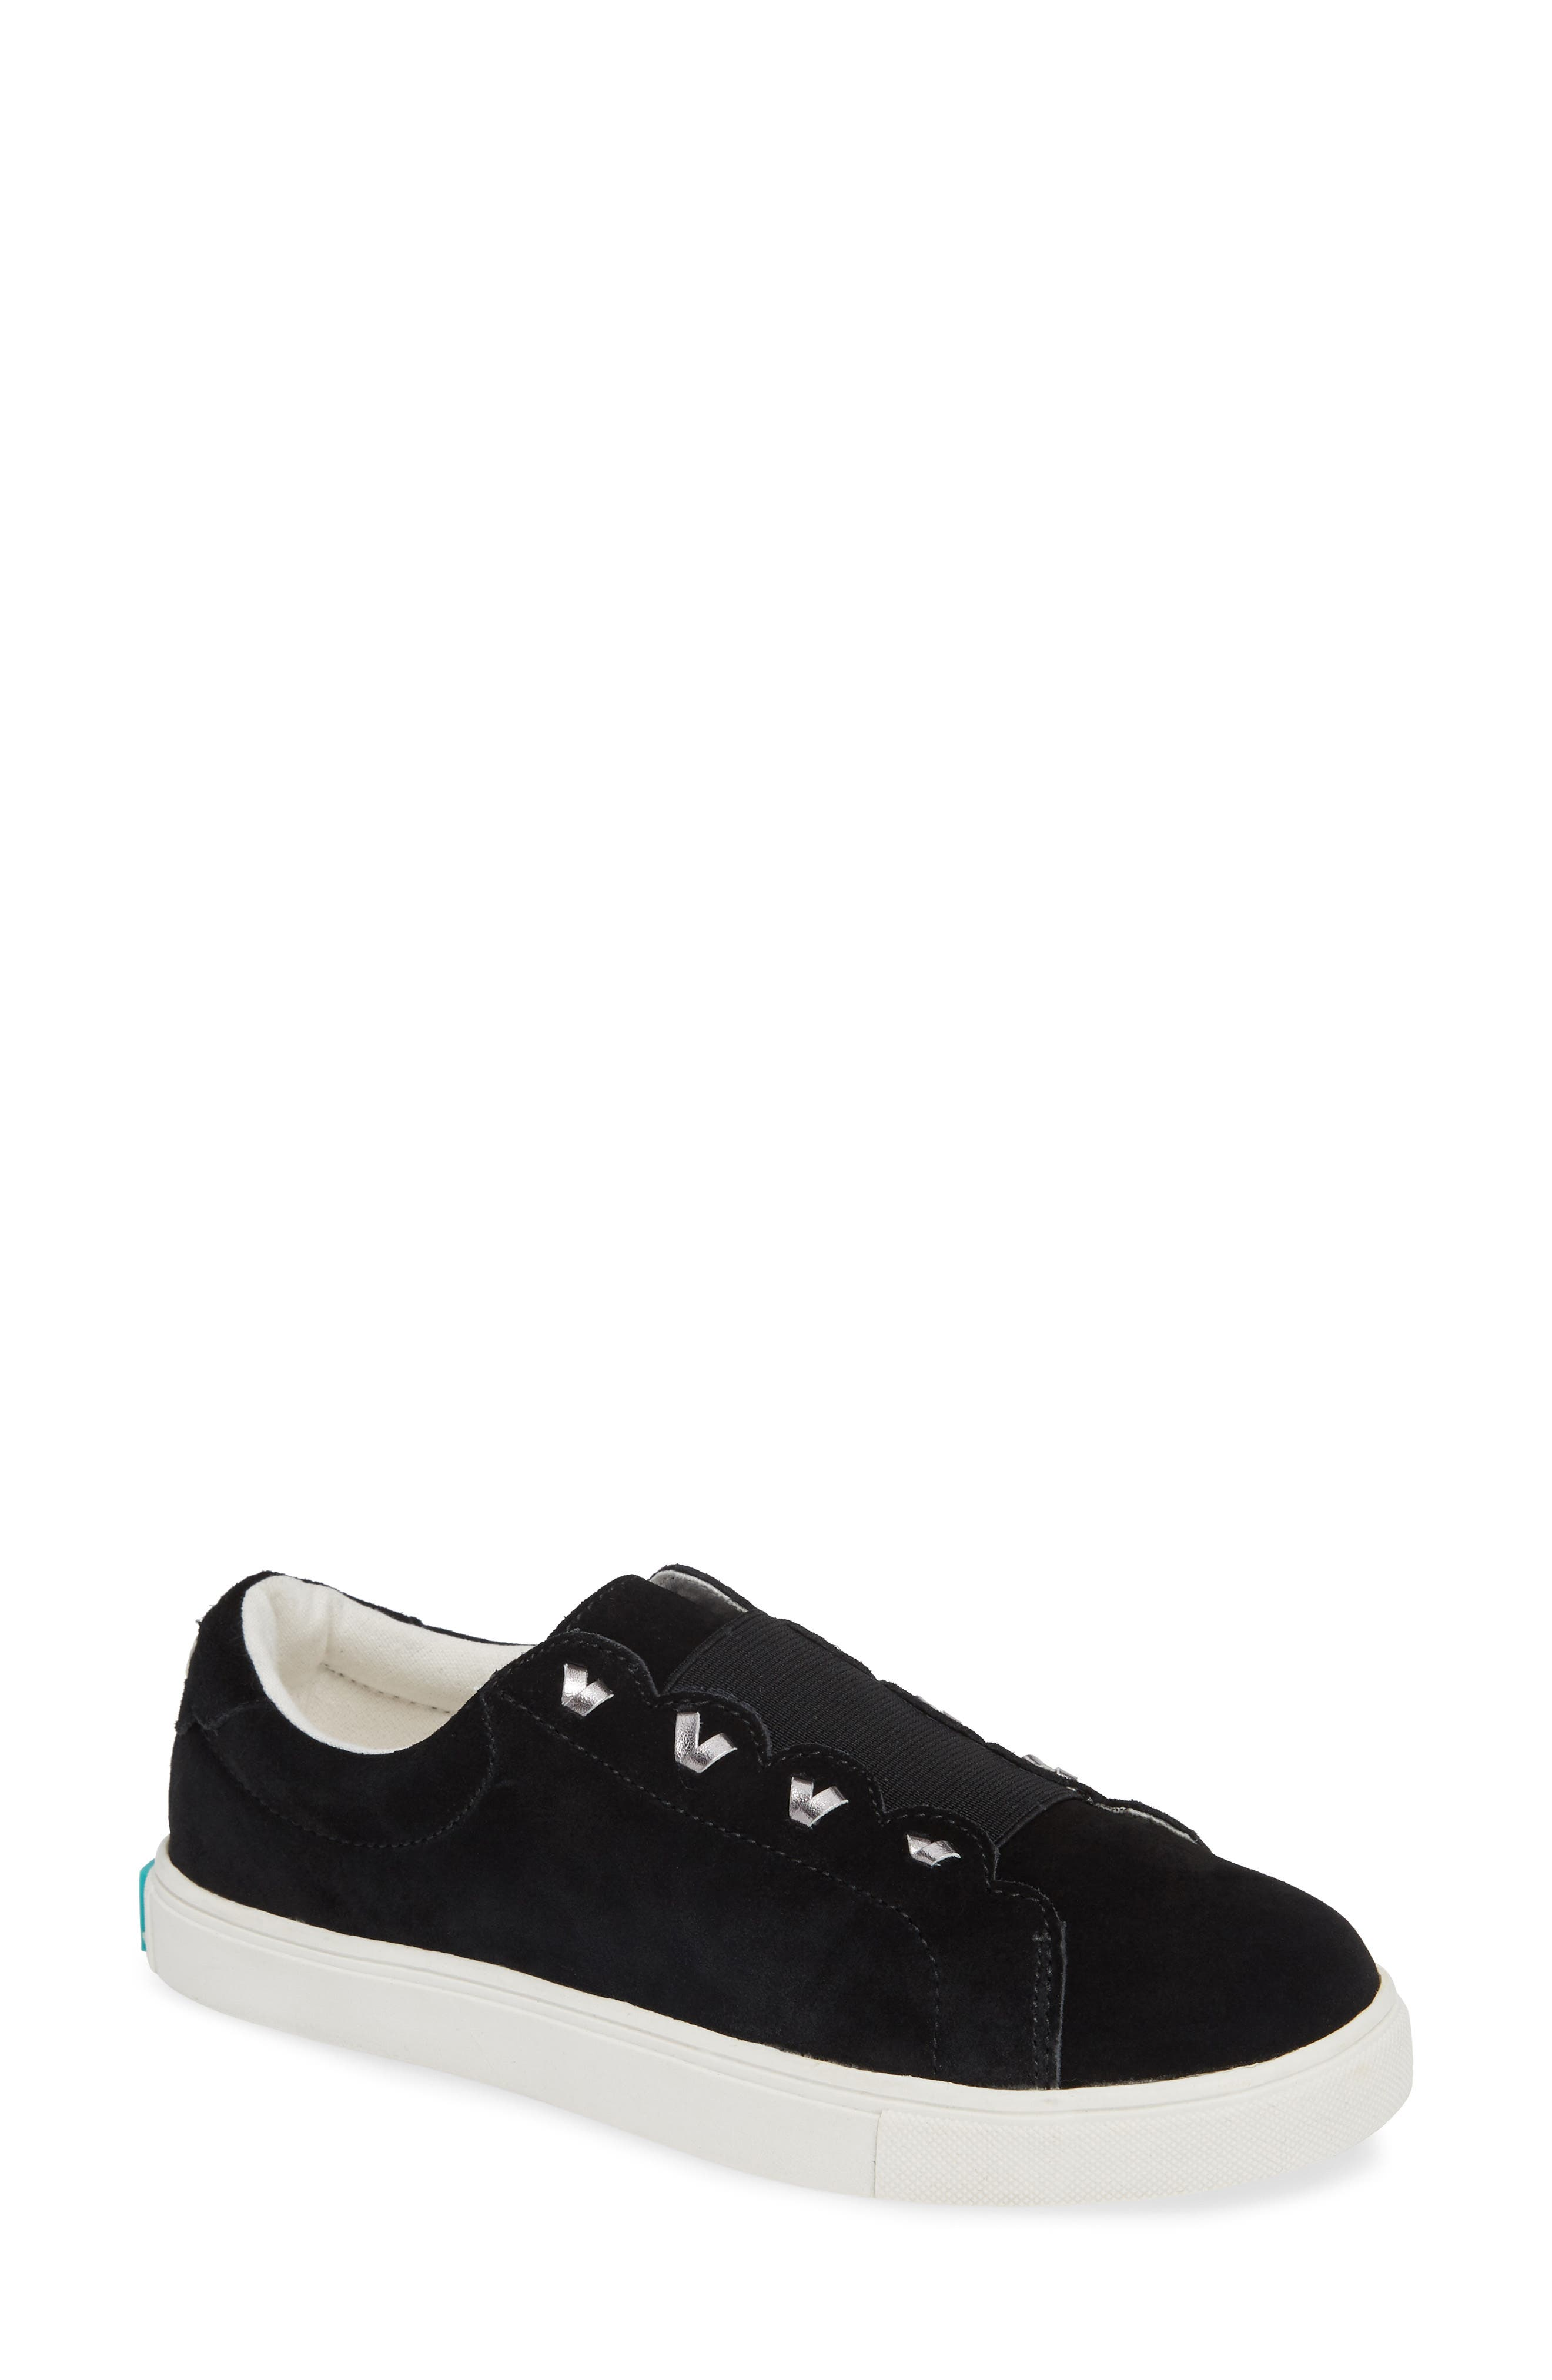 Rye Sneaker,                             Main thumbnail 1, color,                             BLACK SUEDE